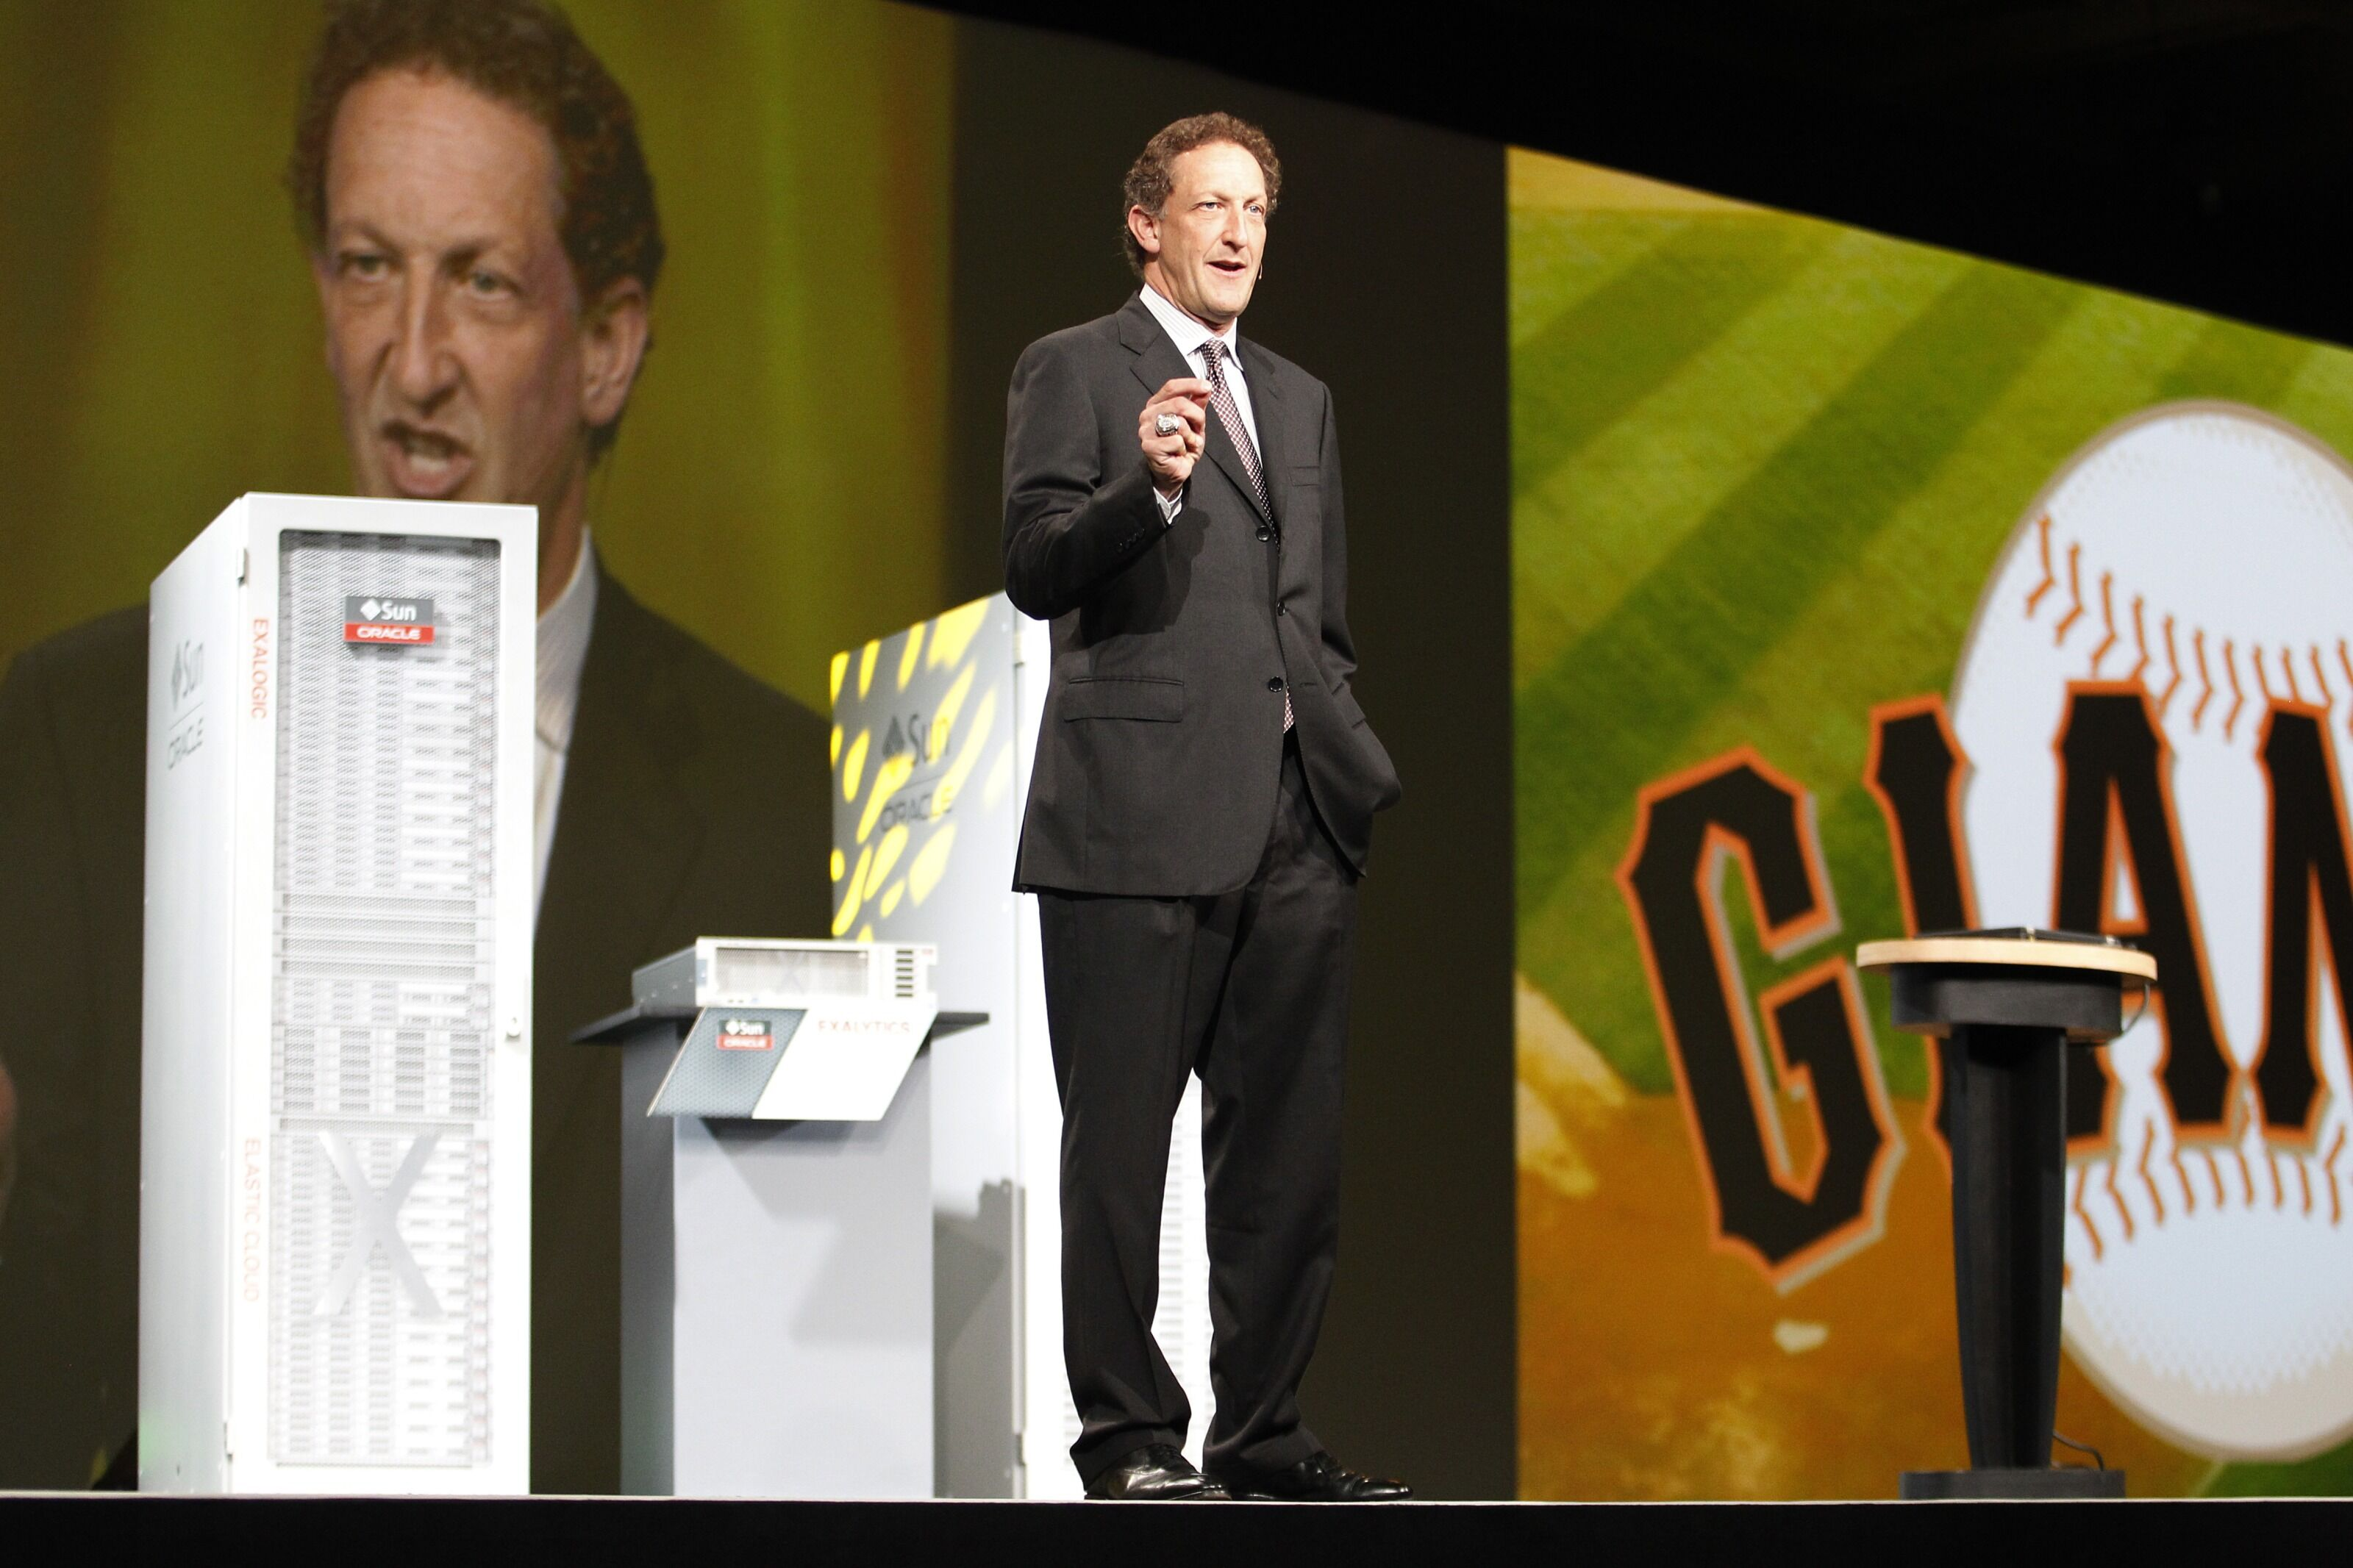 San Francisco Giants: CEO Larry Baer should be held accountable